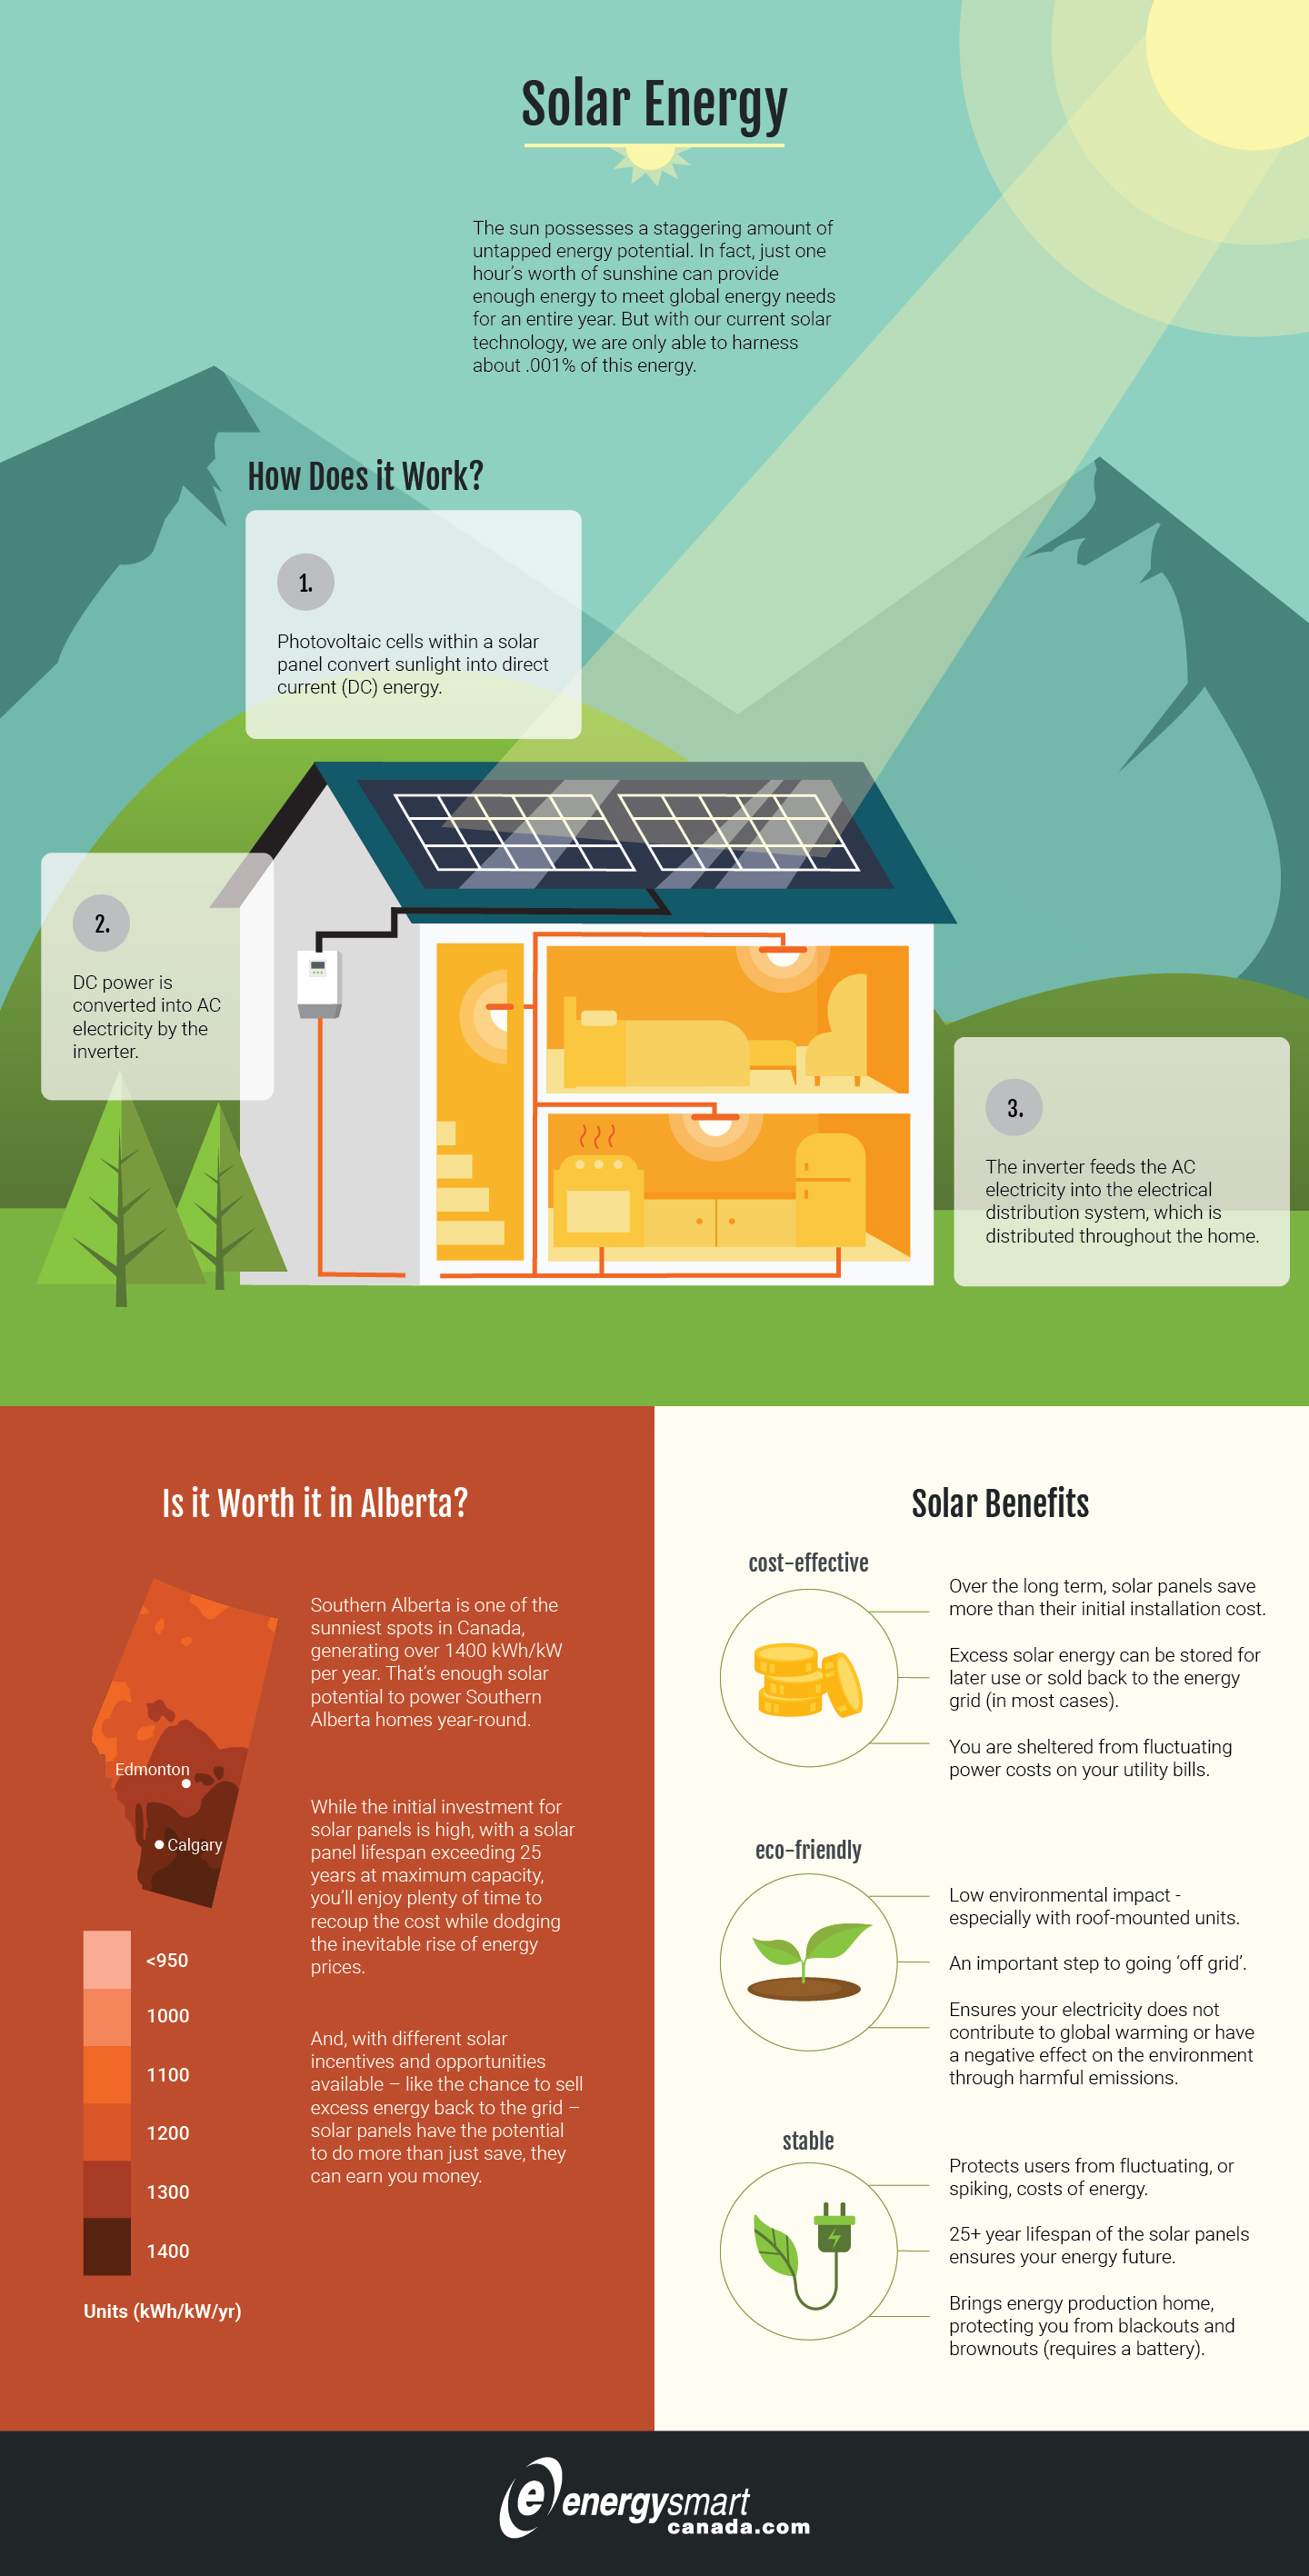 Solar Energy - How It Works